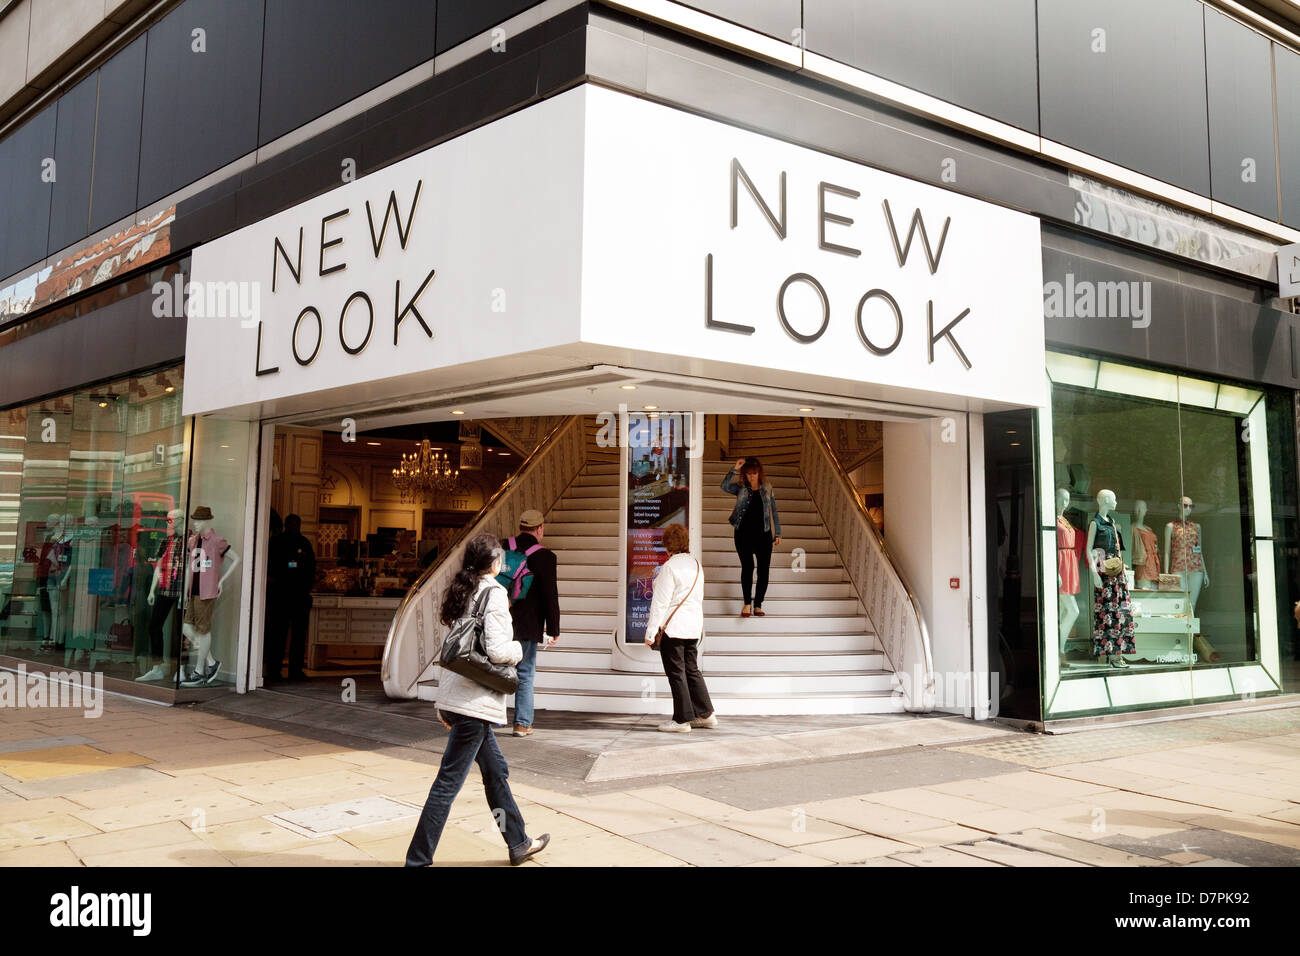 New Look store shop, Oxford Street, central London, UKStock Photo